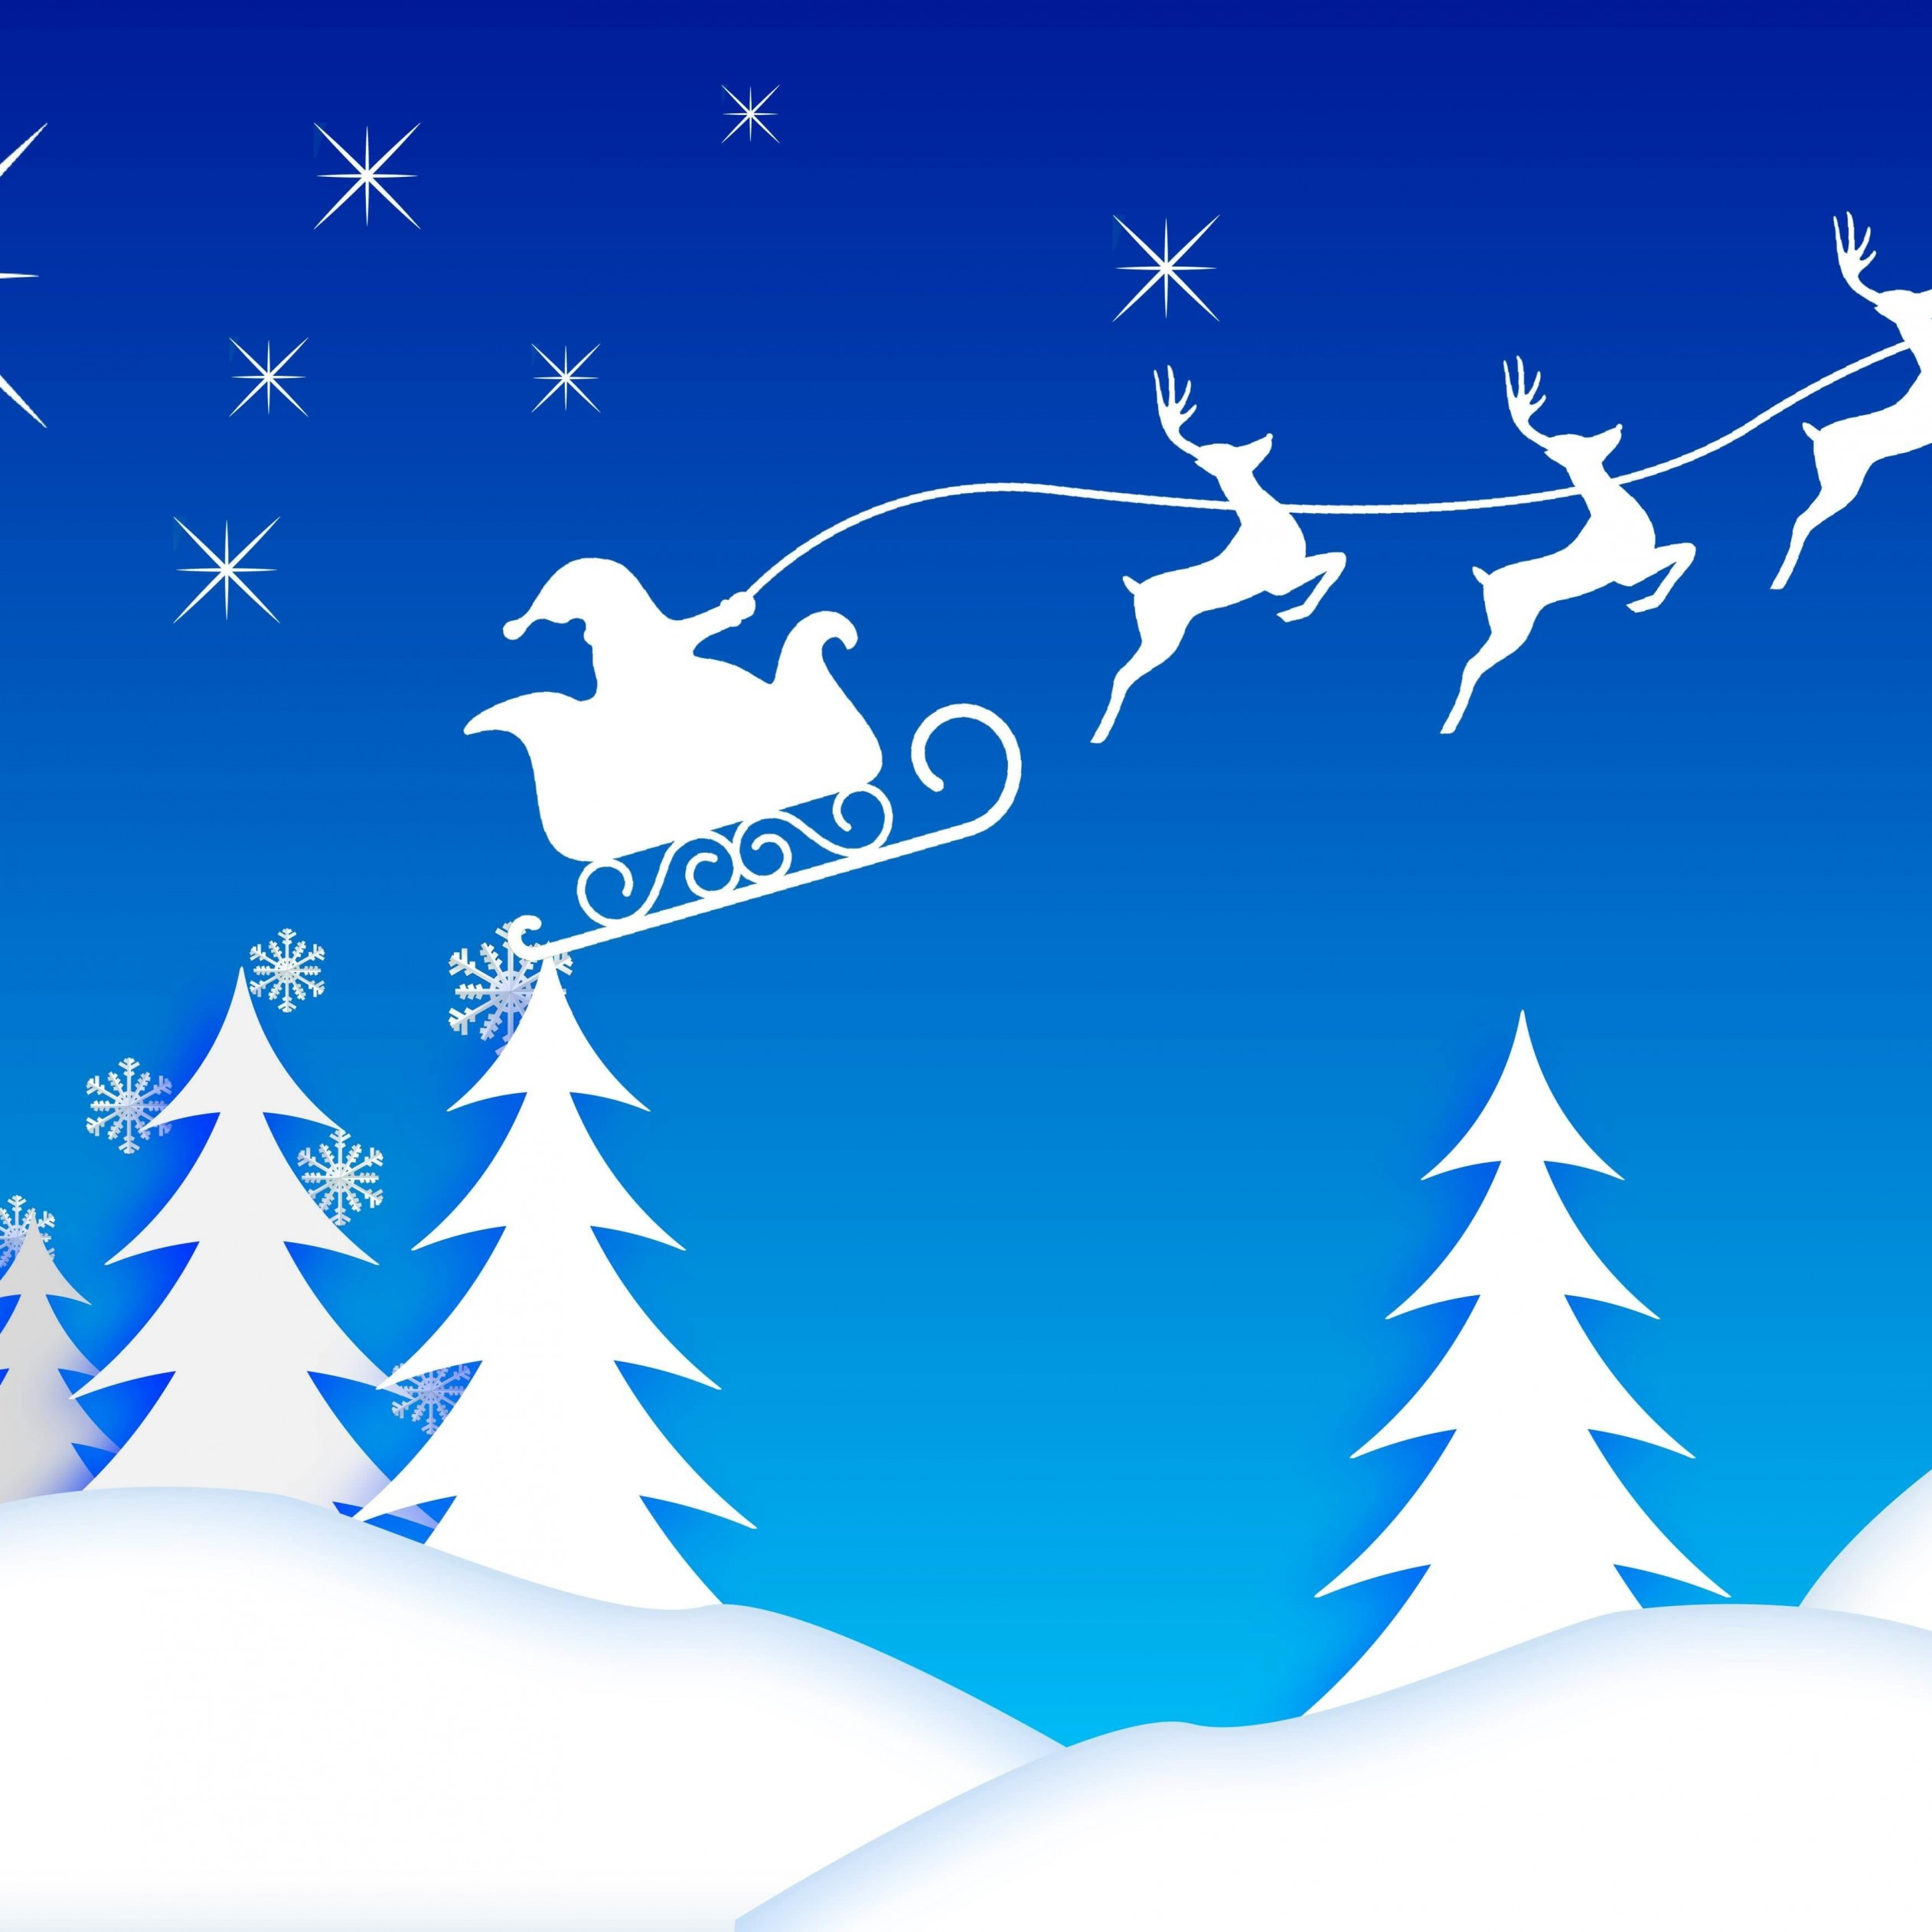 Santa's Sleigh Illustration Wallpaper for Apple iPad mini 2